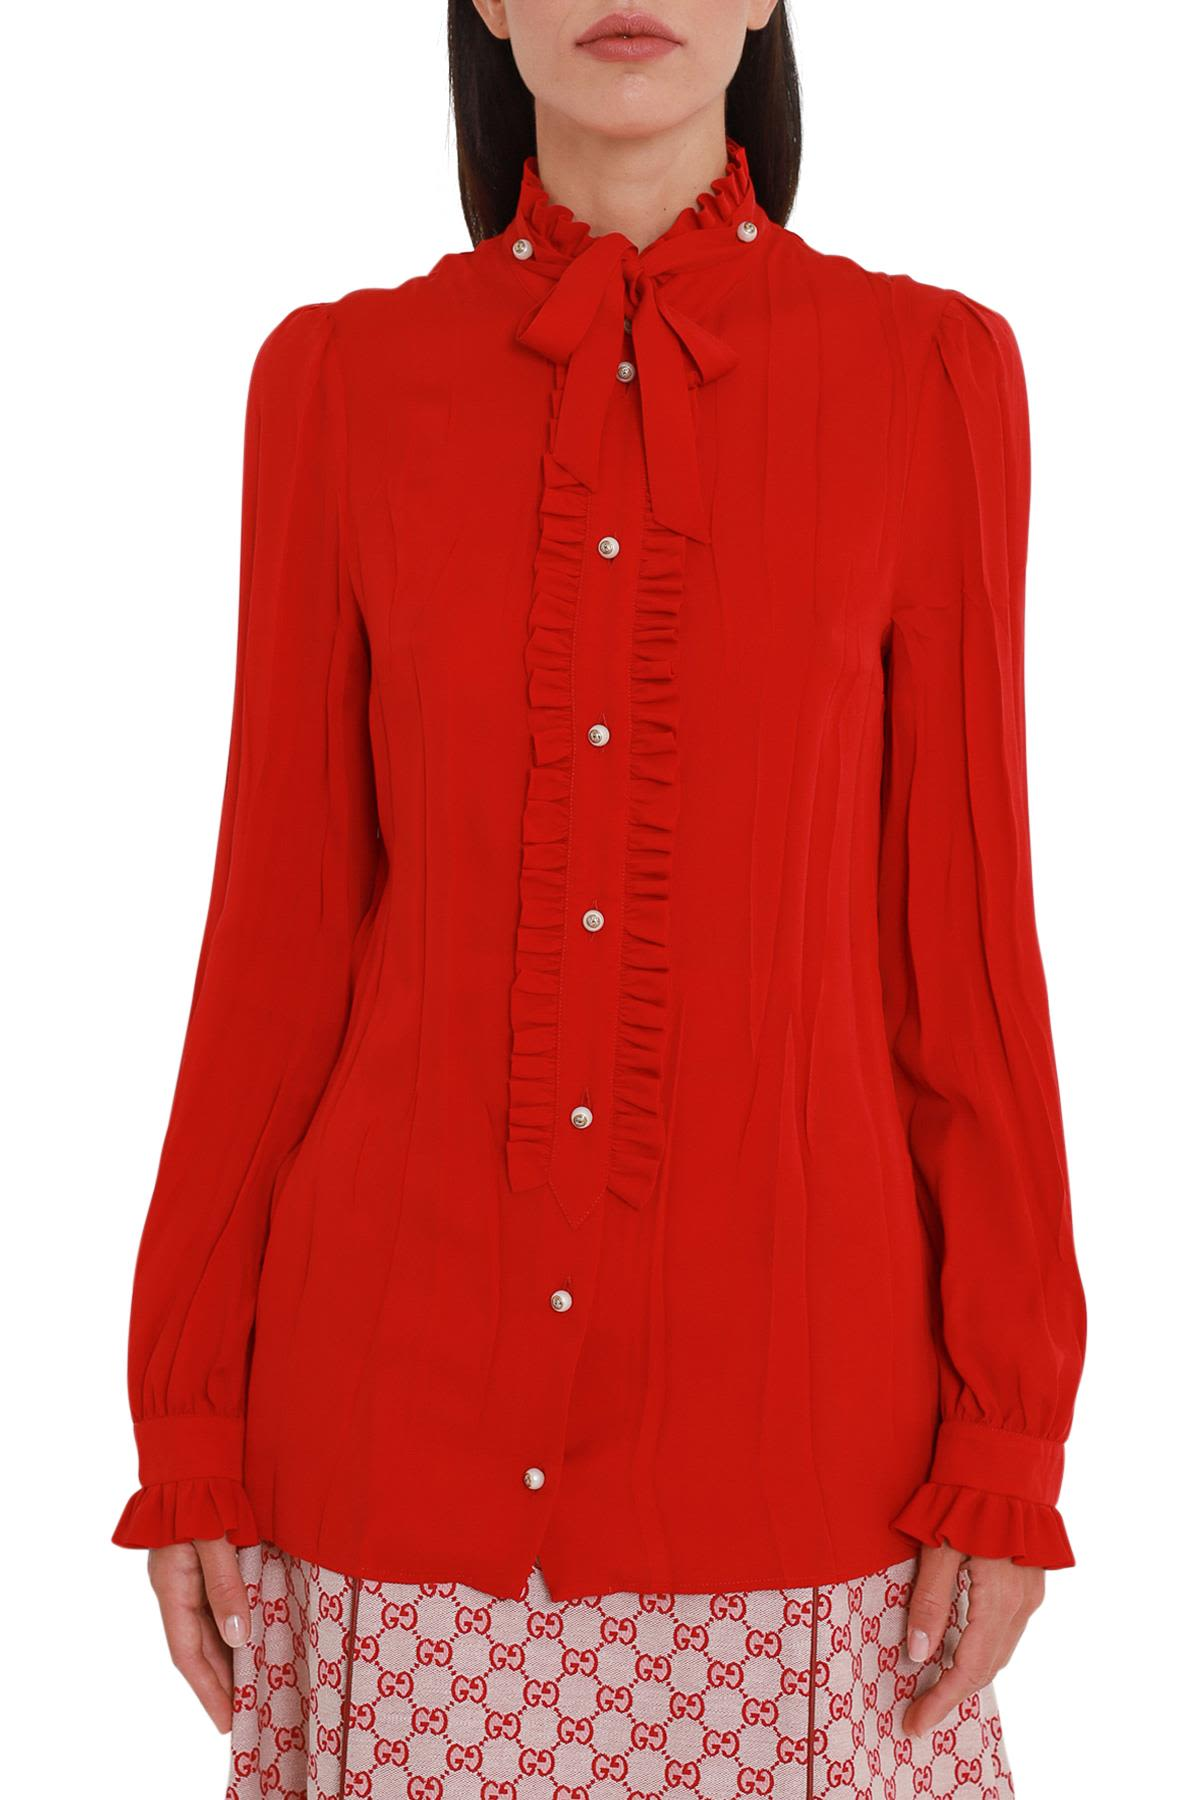 Gucci Georgette Shirt With Ruffles And Pearl Buttons